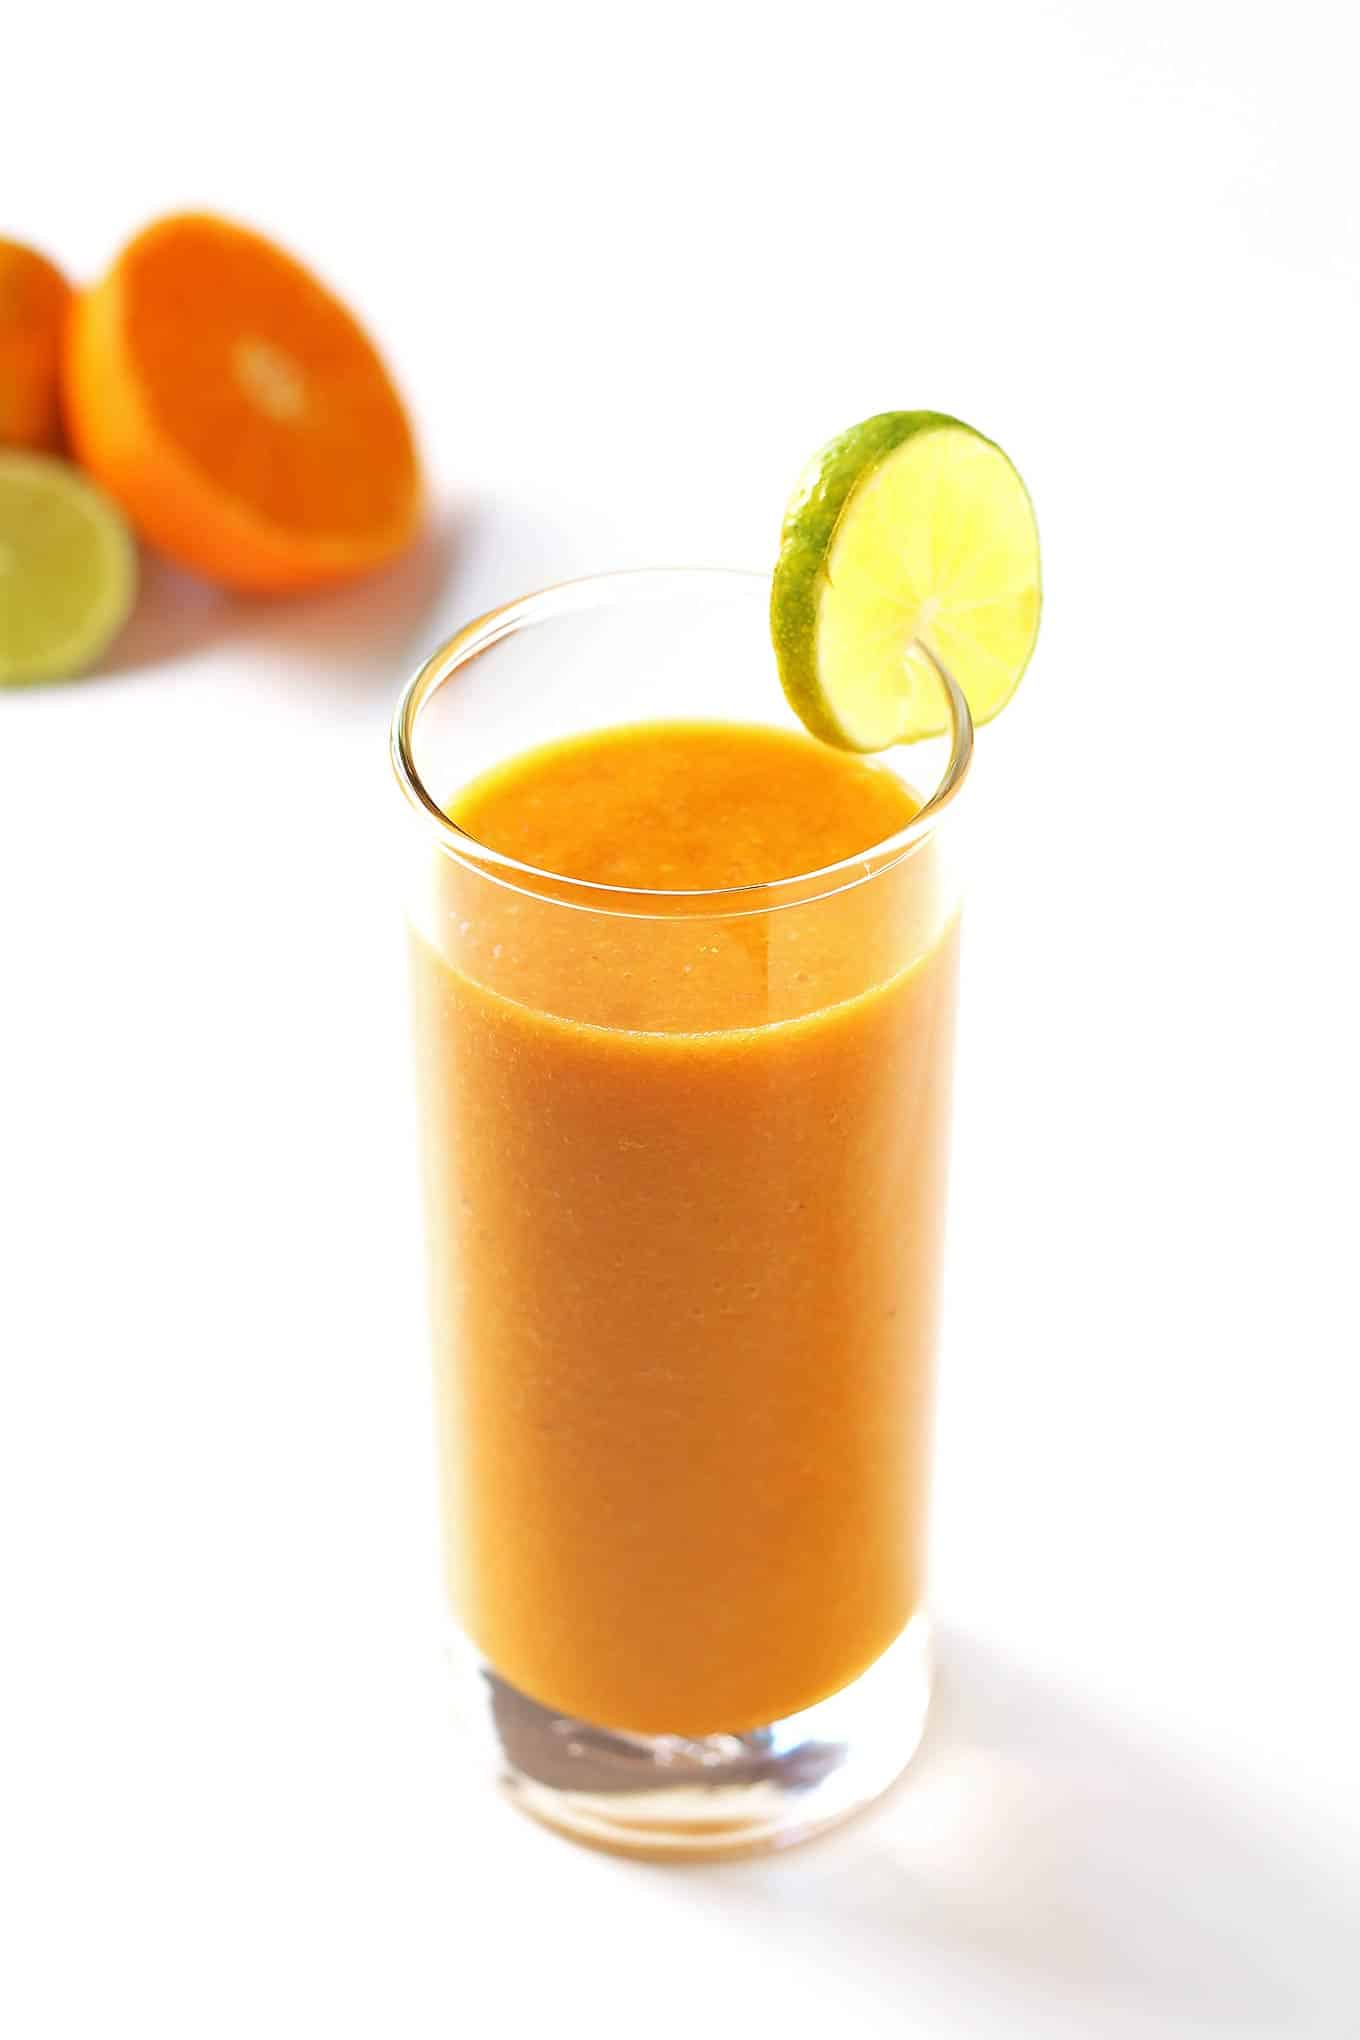 Glass of Carrot Citrus Smoothie